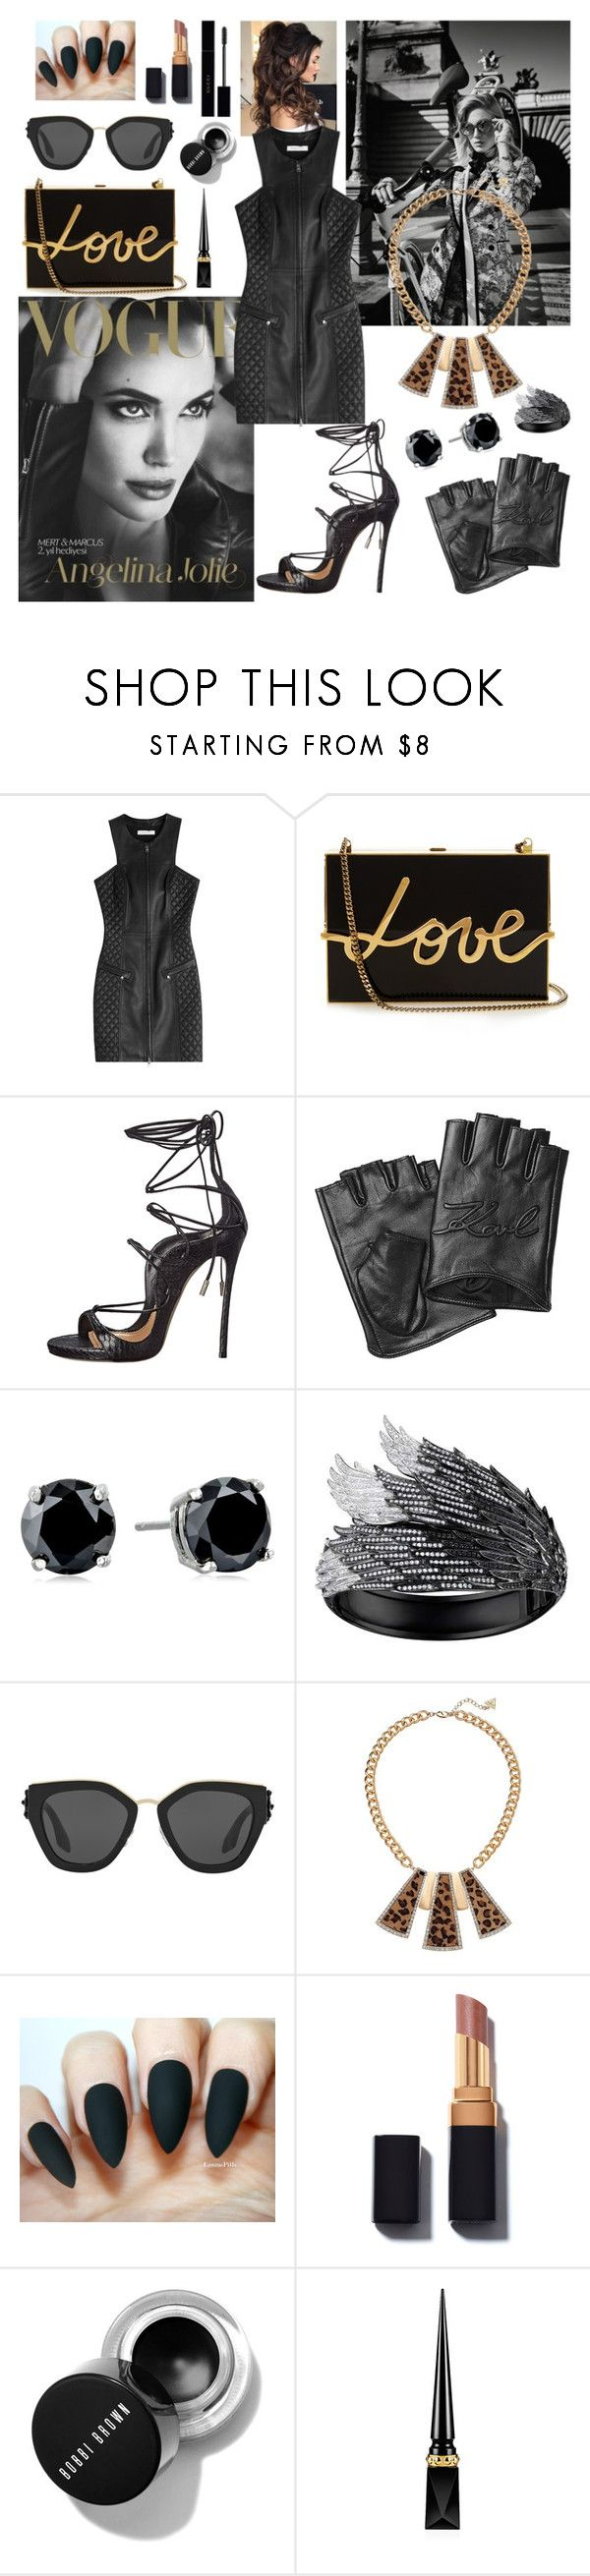 """""""Untitled #75"""" by sexyjelly484 ❤ liked on Polyvore featuring Burton, Pierre Balmain, Lanvin, Dsquared2, Karl Lagerfeld, CZ by Kenneth Jay Lane, AS29, Prada, GUESS and Christian Louboutin"""